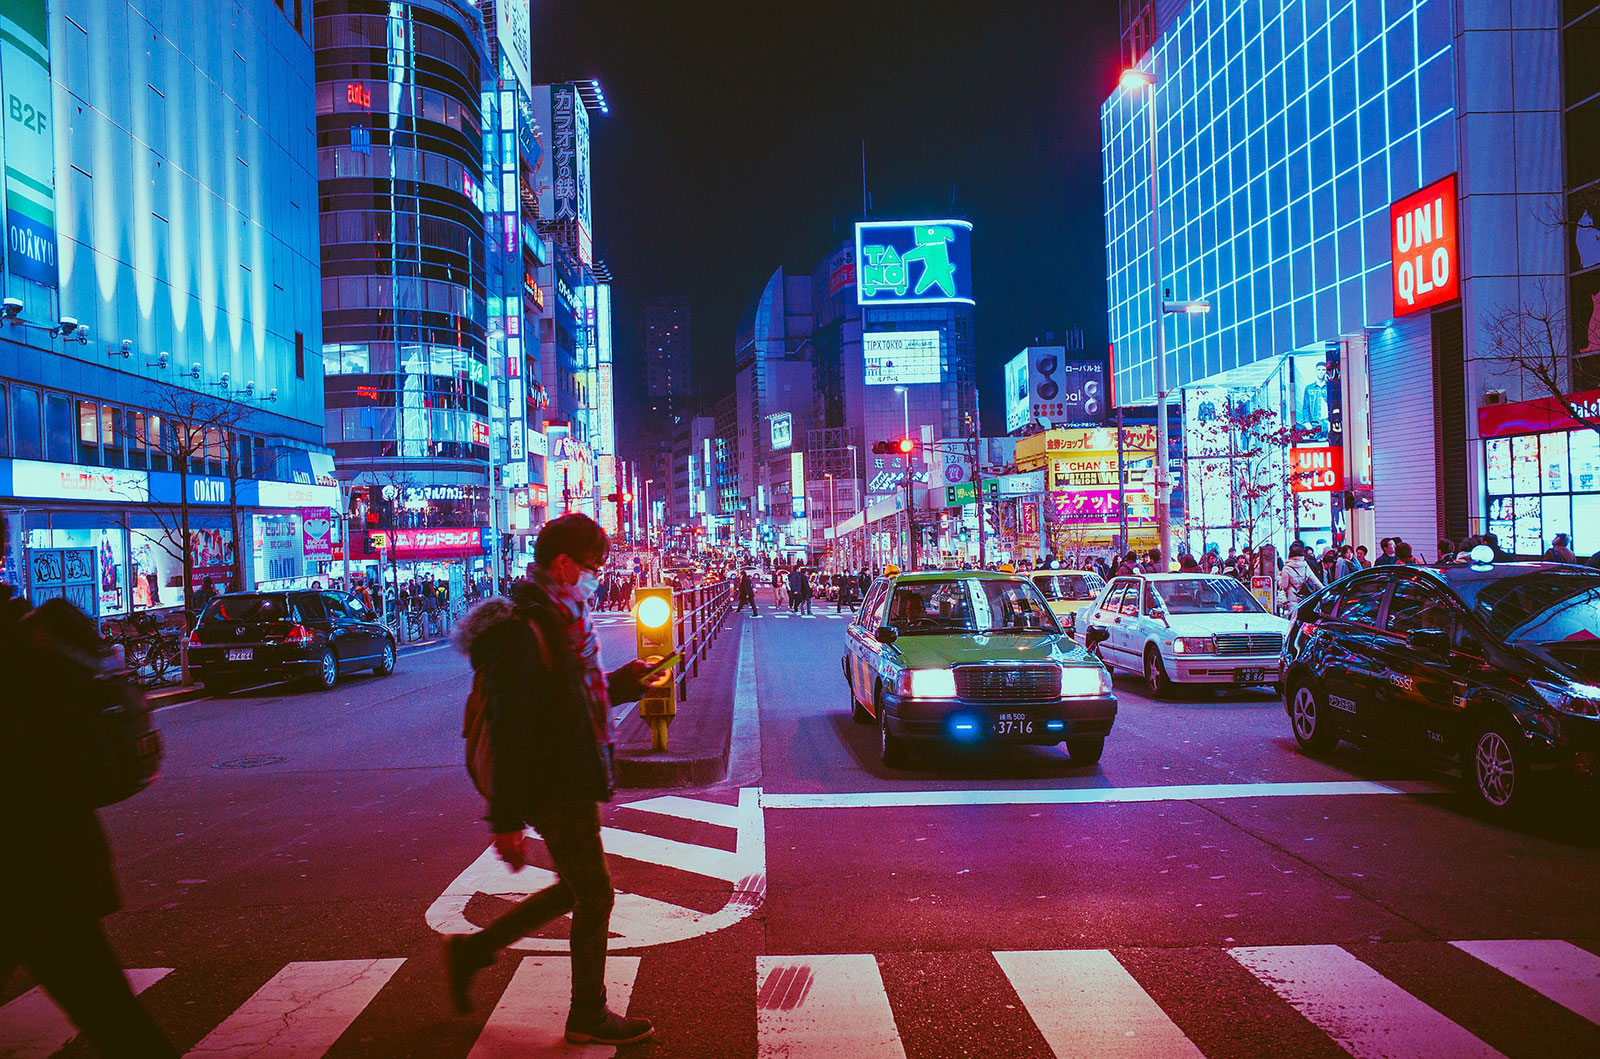 Osaka's bustling downtown pictured at night. The city is one of the fastest growing economic hubs in Japan, and is looking to put itself on the map over the coming decade